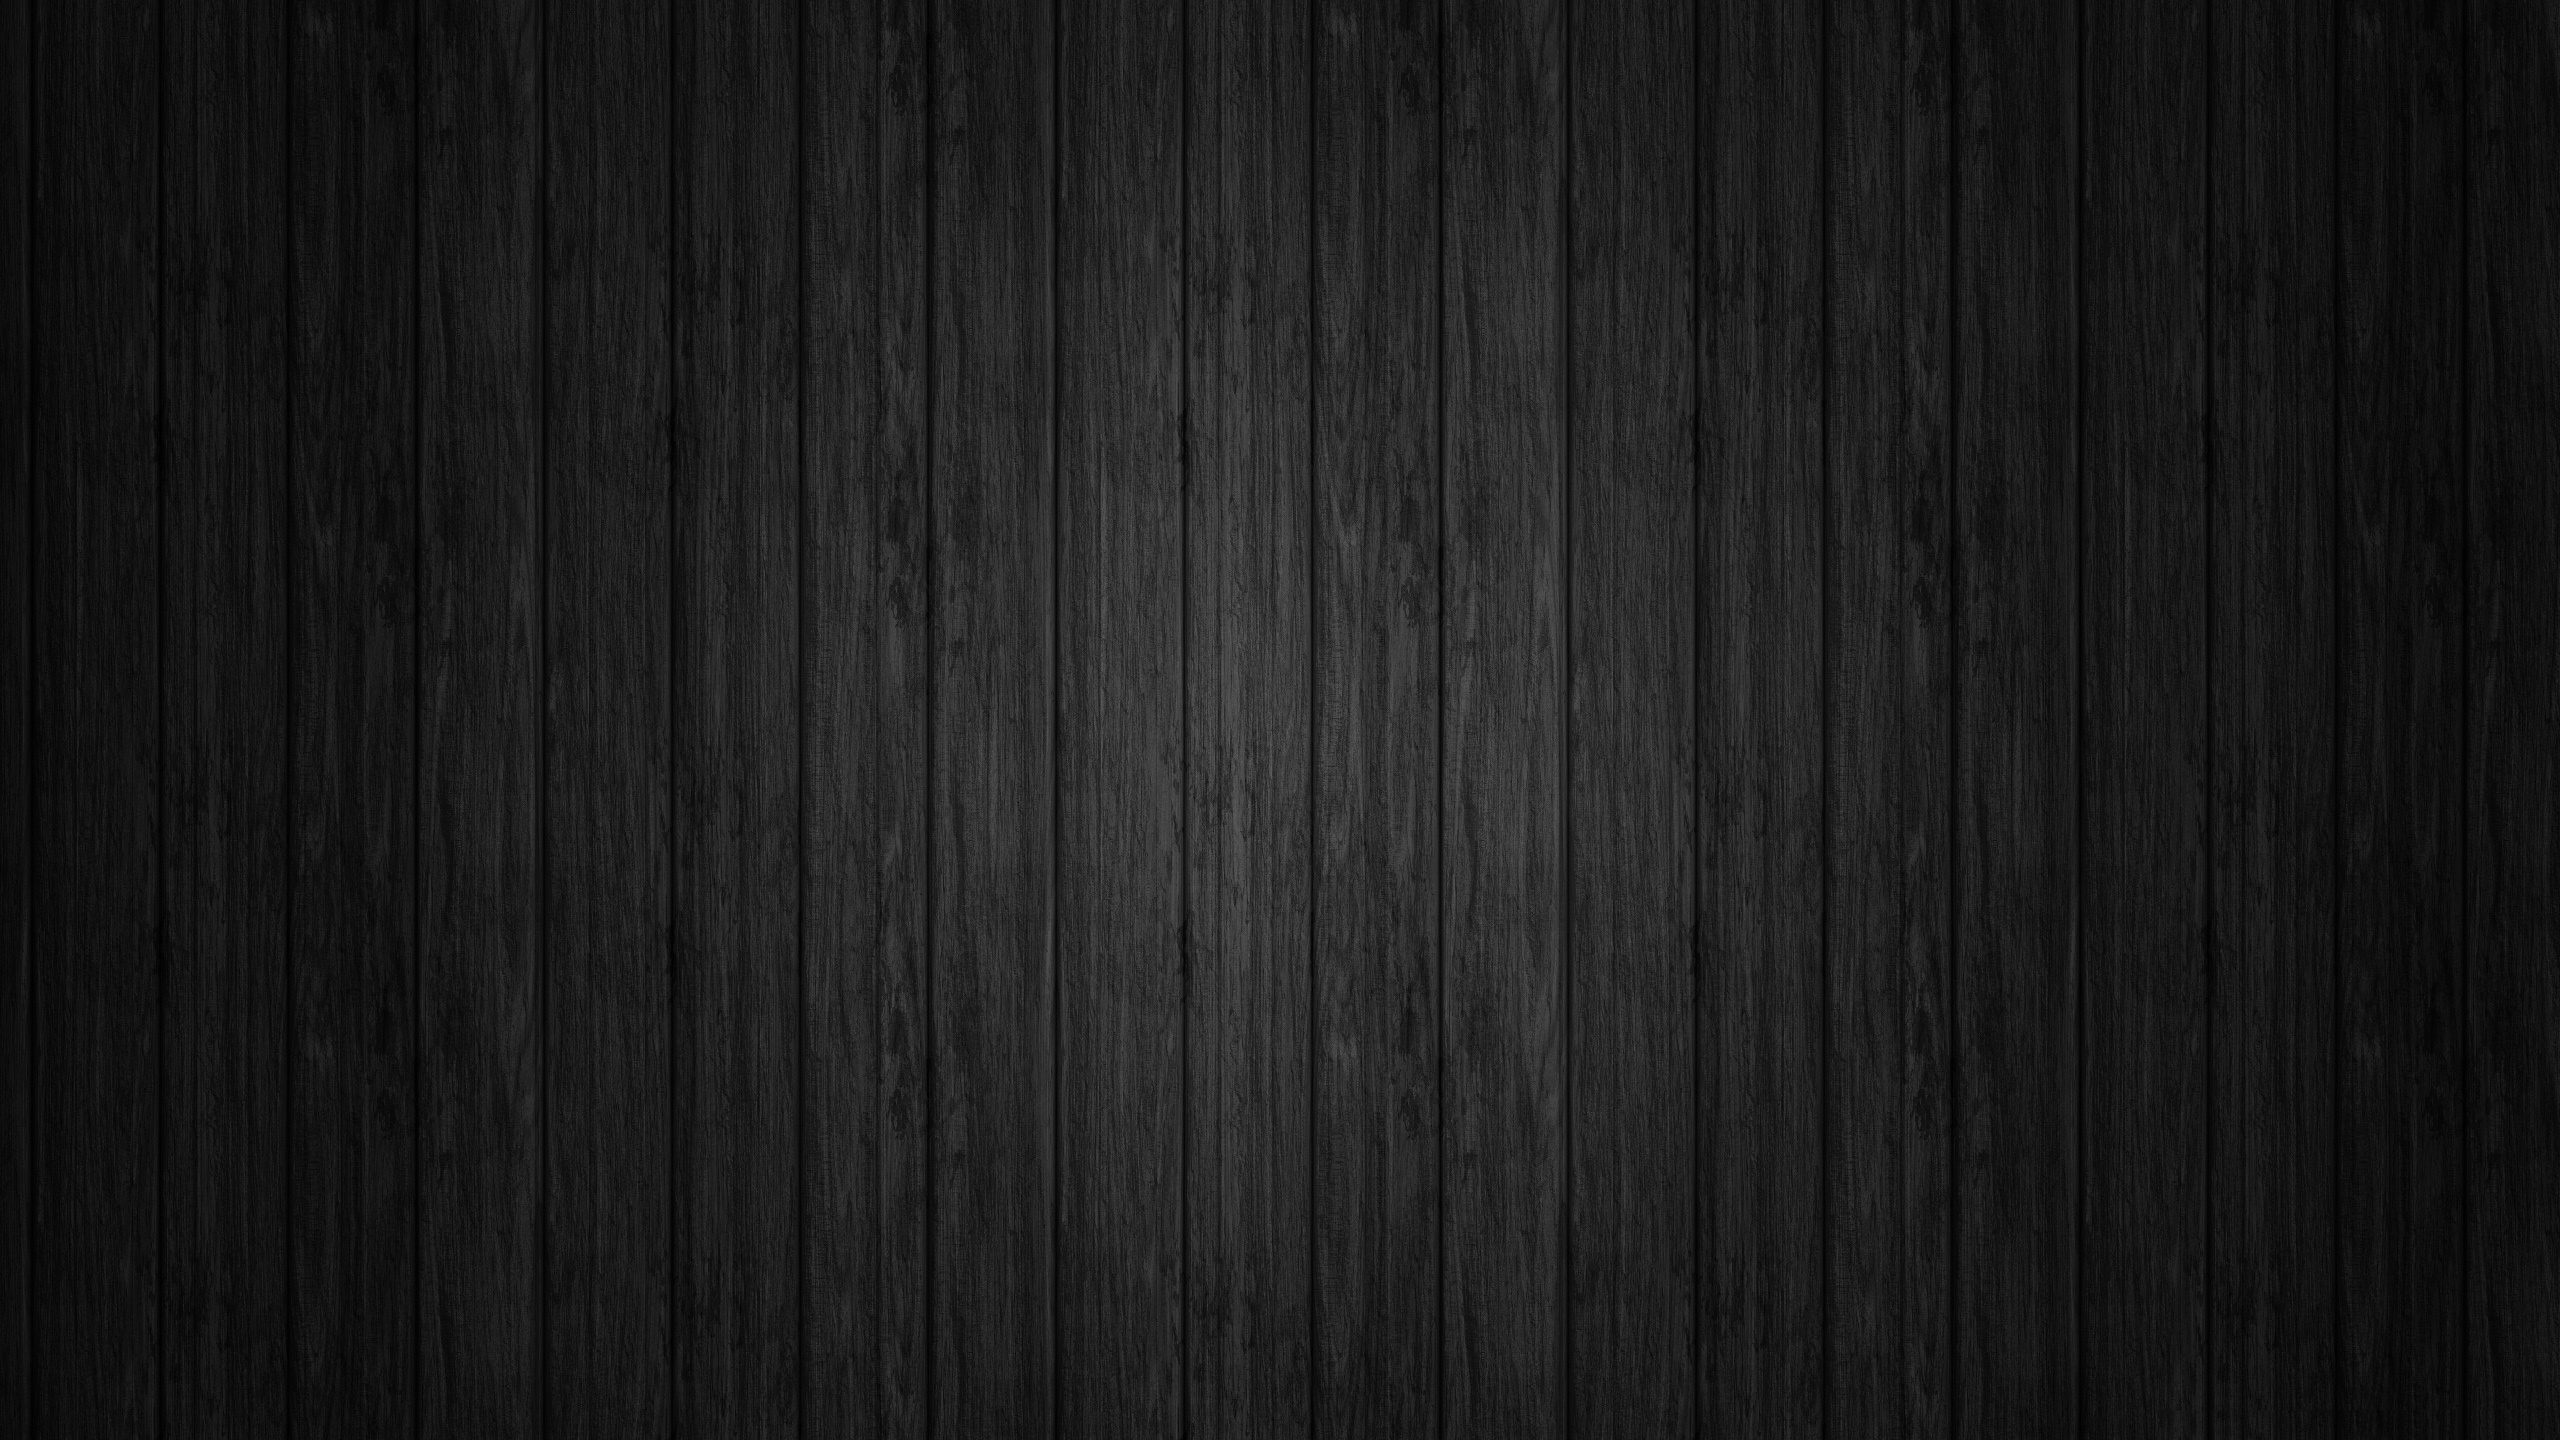 sparkly wallpaper wood black c03mqaskj zqdyc6b background 2560x1440